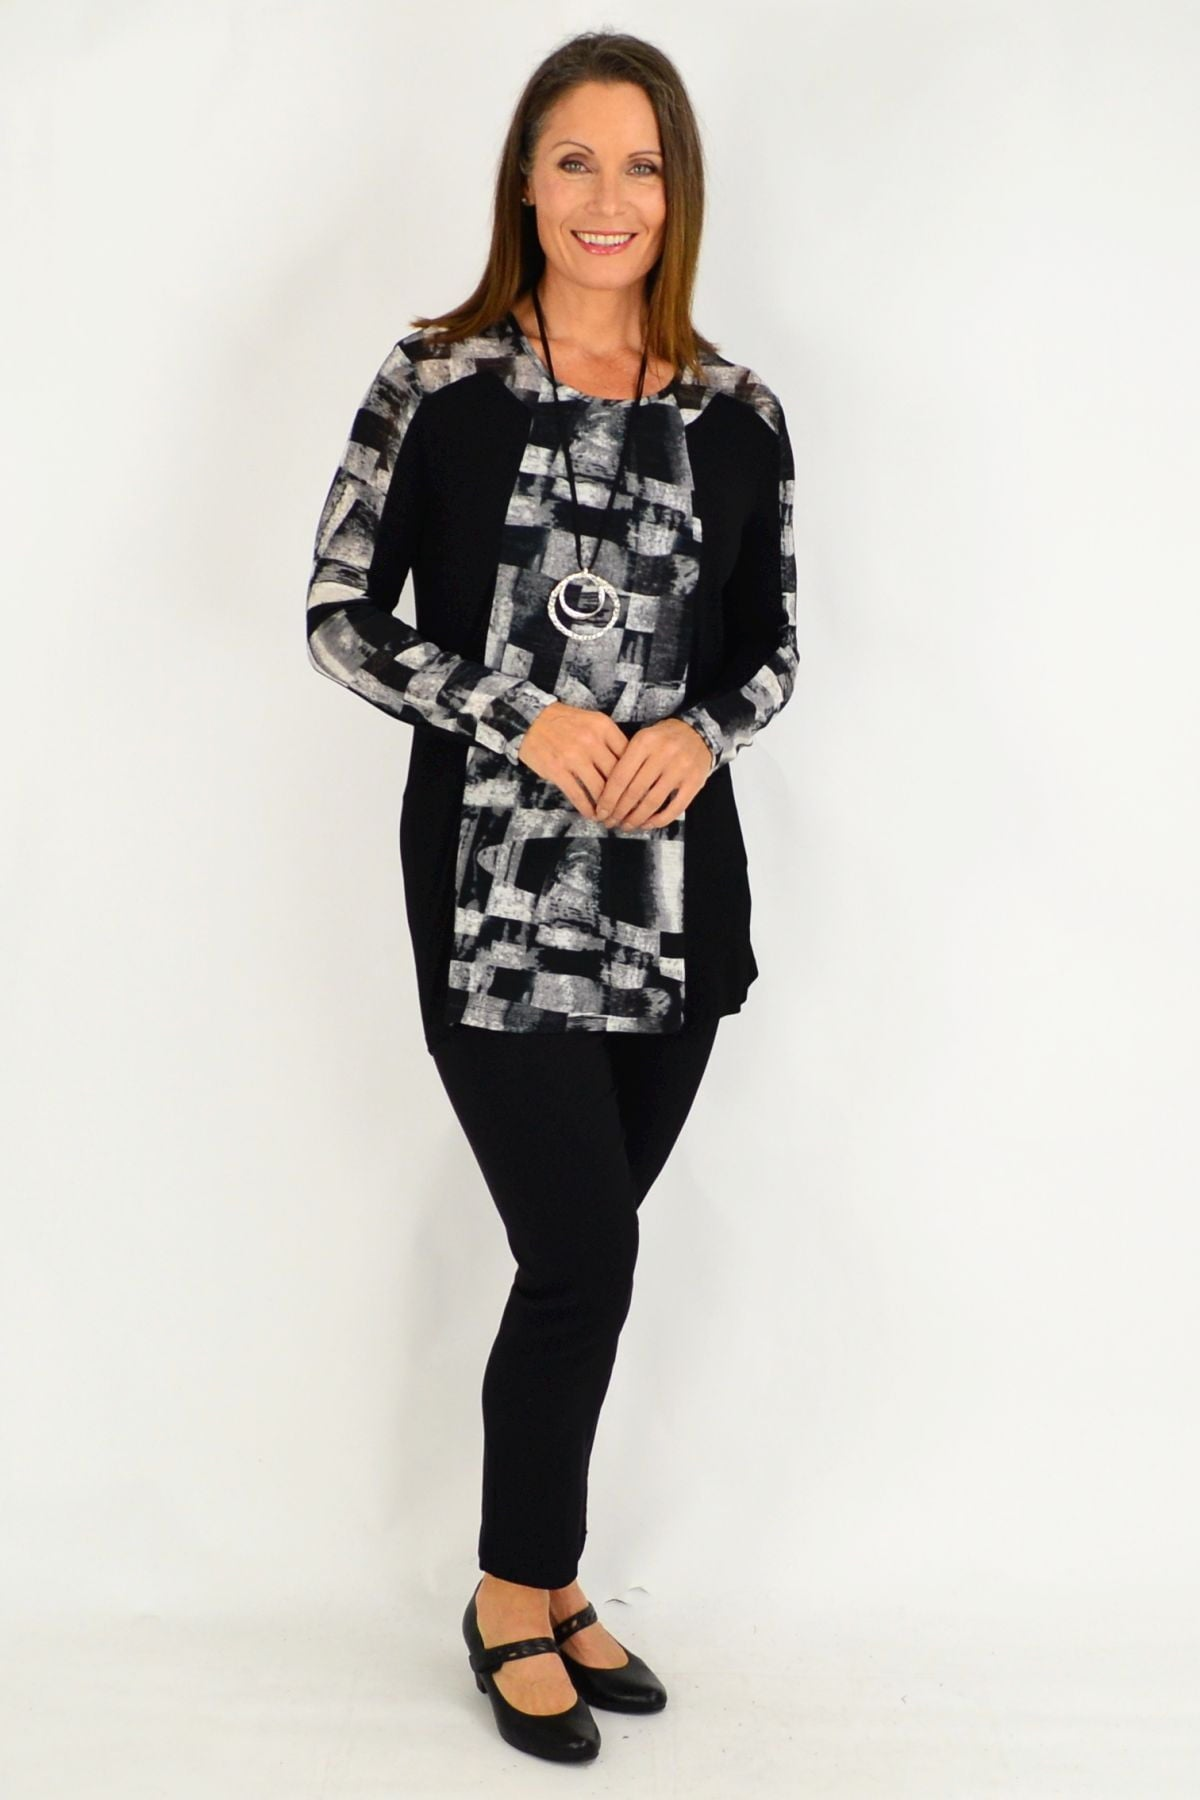 Maria Silver Black Tunic Top | I Love Tunics | Tunic Tops | Tunic | Tunic Dresses  | womens clothing online